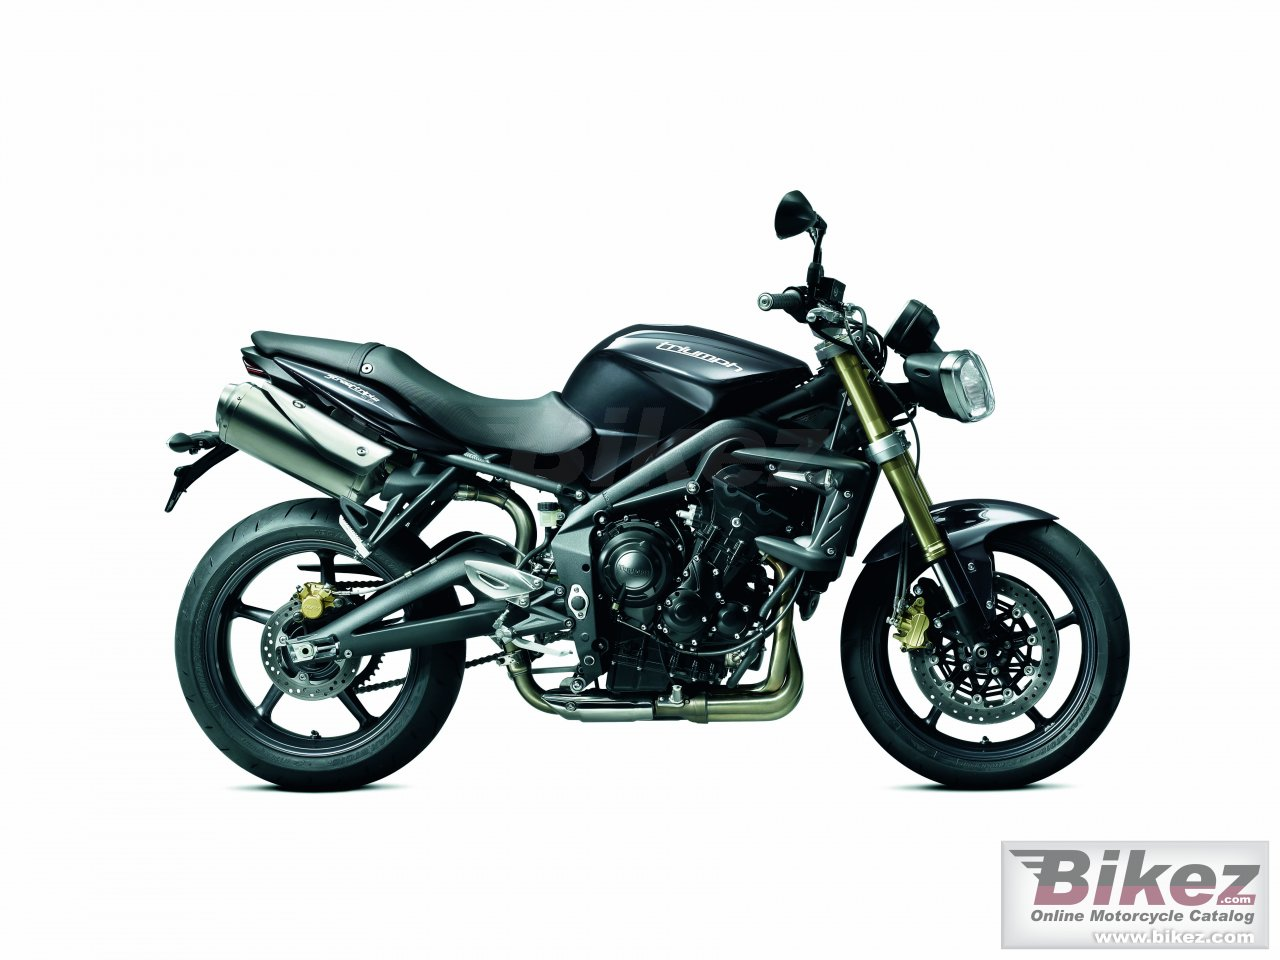 Big Triumph street triple picture and wallpaper from Bikez.com